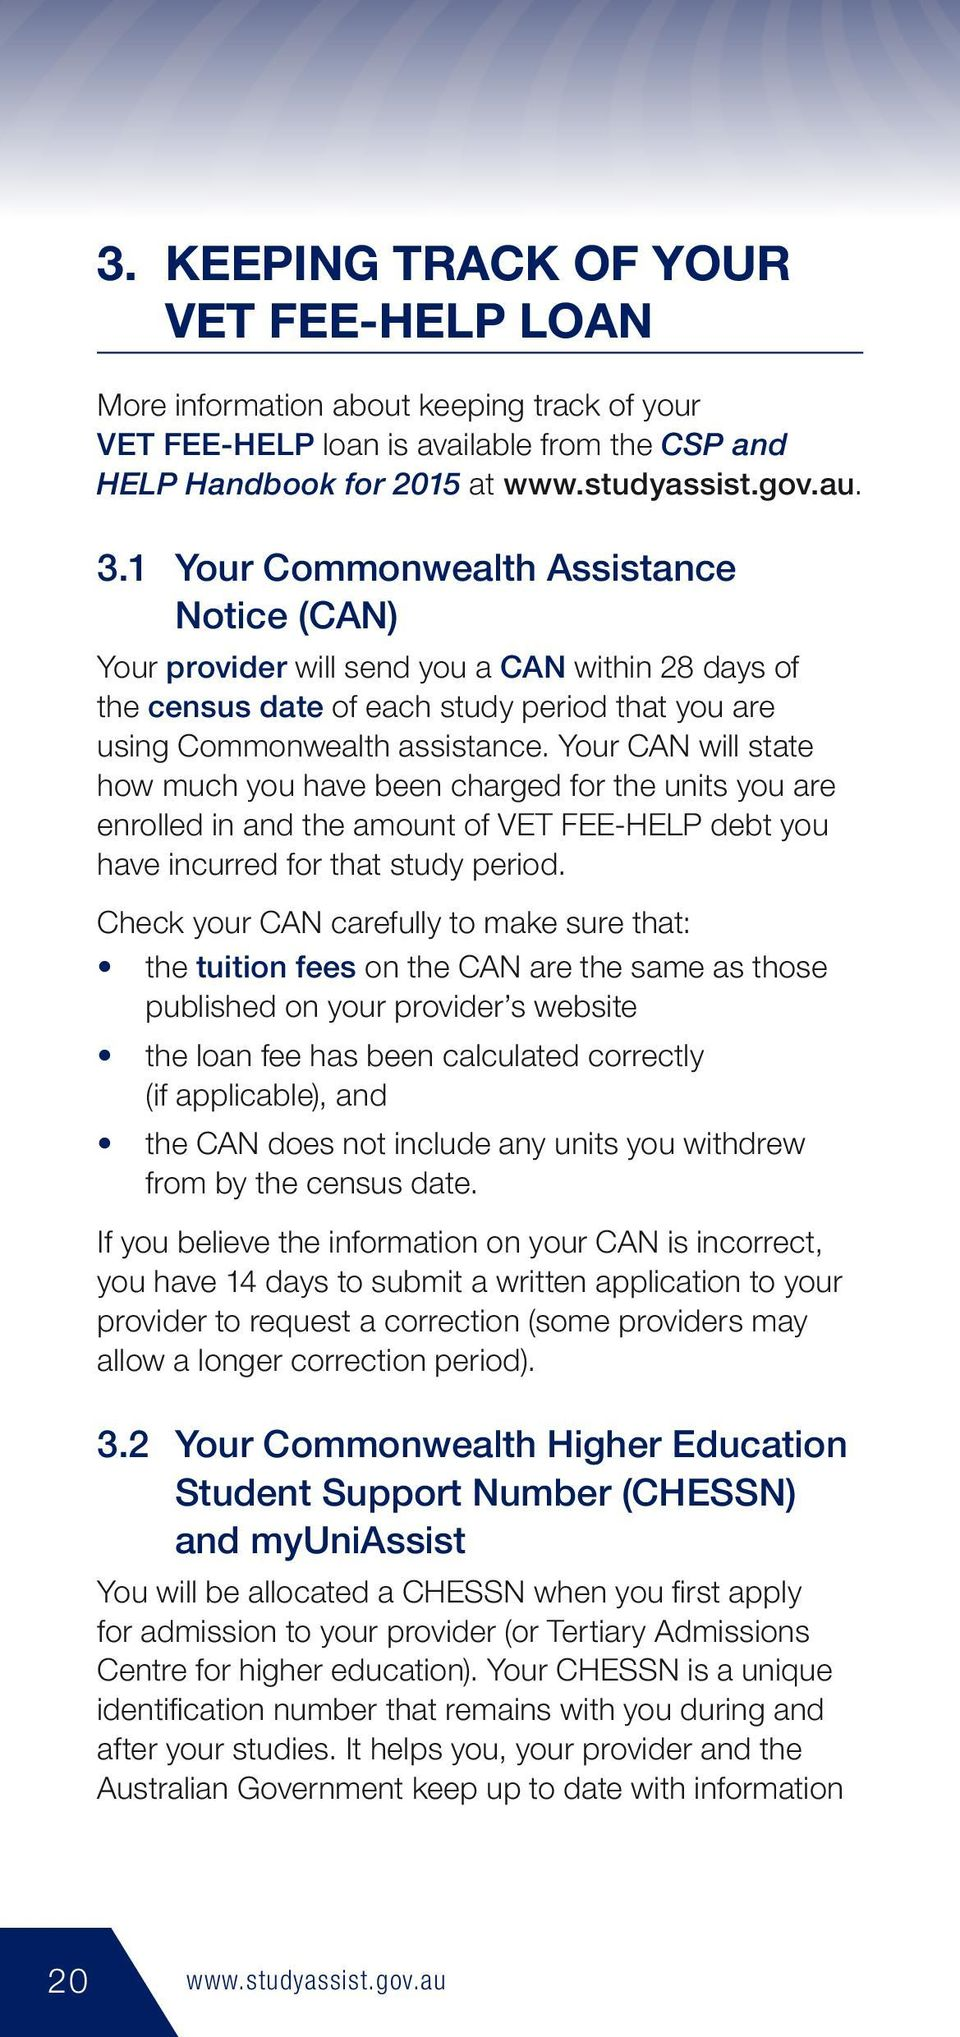 Your CAN will state how much you have been charged for the units you are enrolled in and the amount of VET FEE-HELP debt you have incurred for that study period.